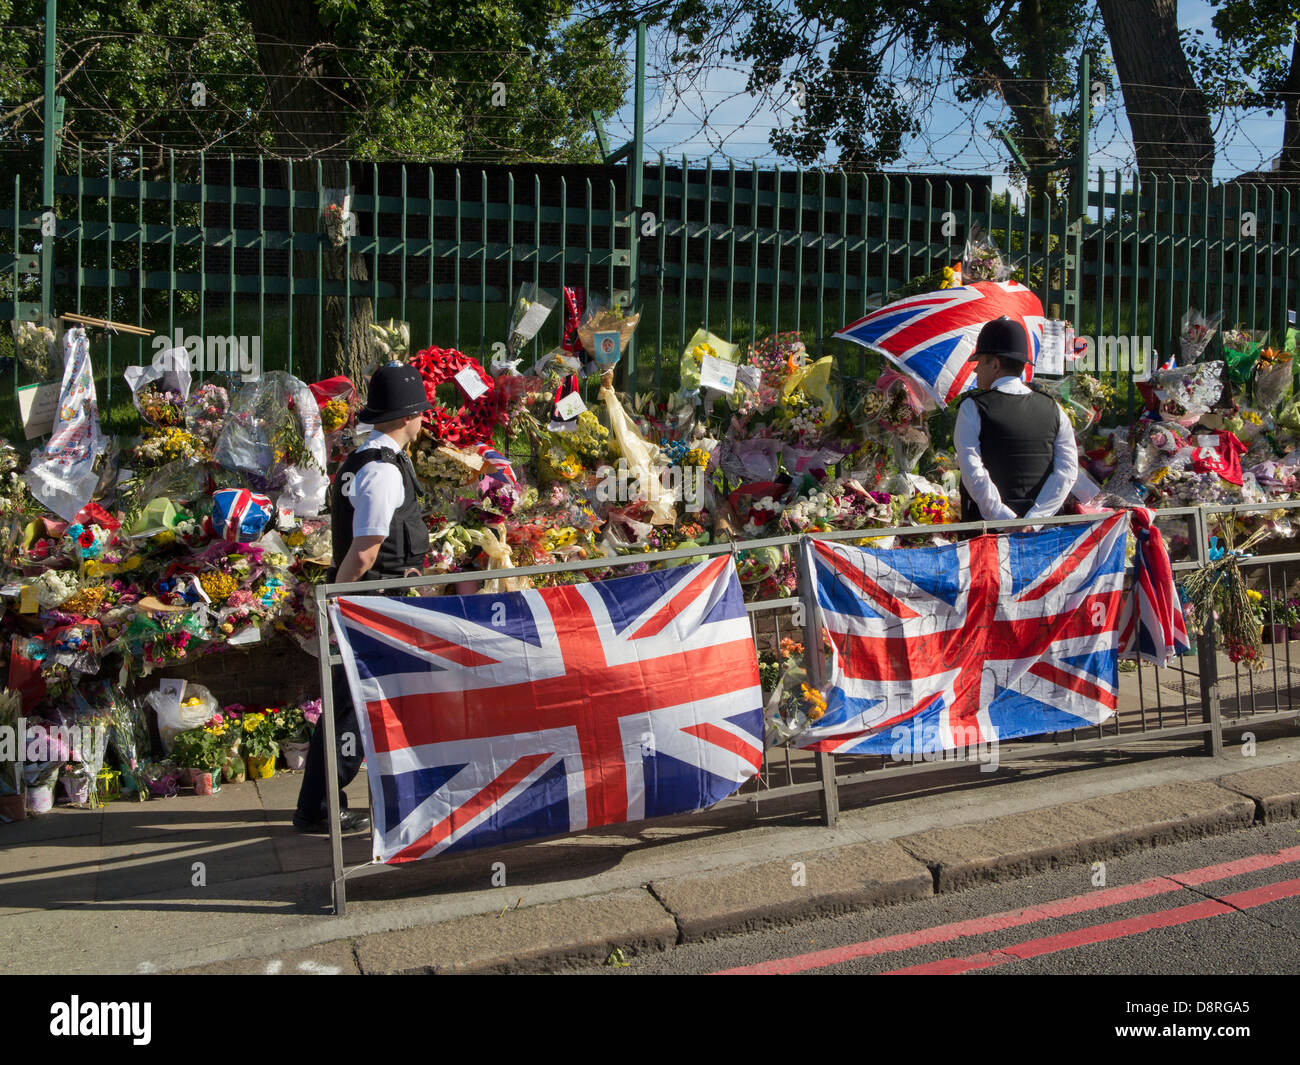 Police watch floral tributes to Drummer Lee Rigby, killed outside Woolwich Barracks in London on May 22 - Stock Image